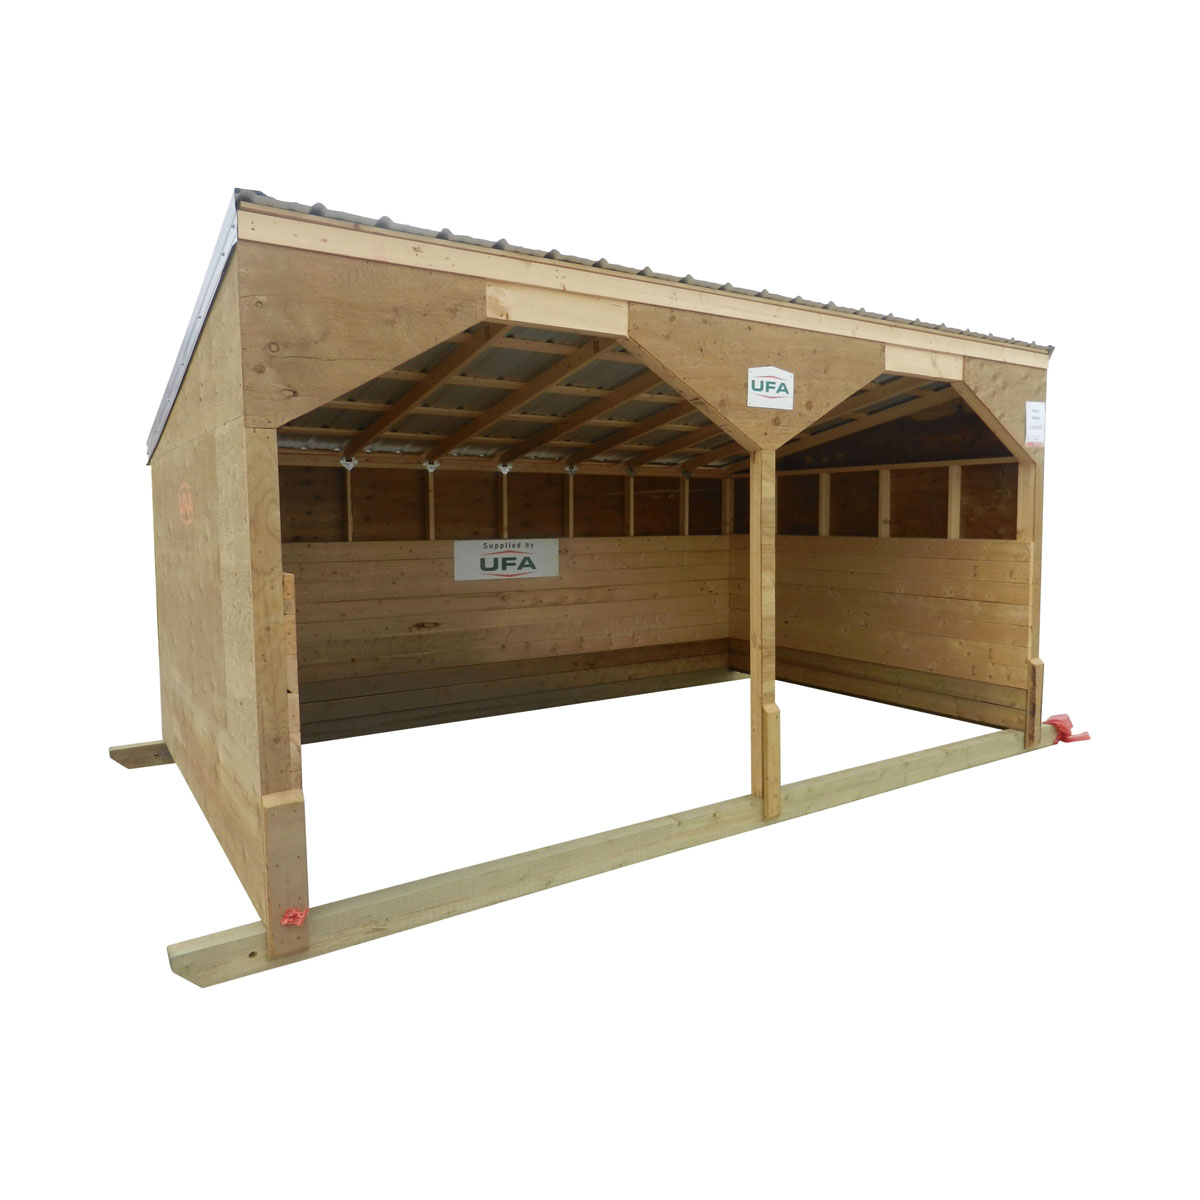 10'x16' Cattle Shelter (8' Front 6' Back)